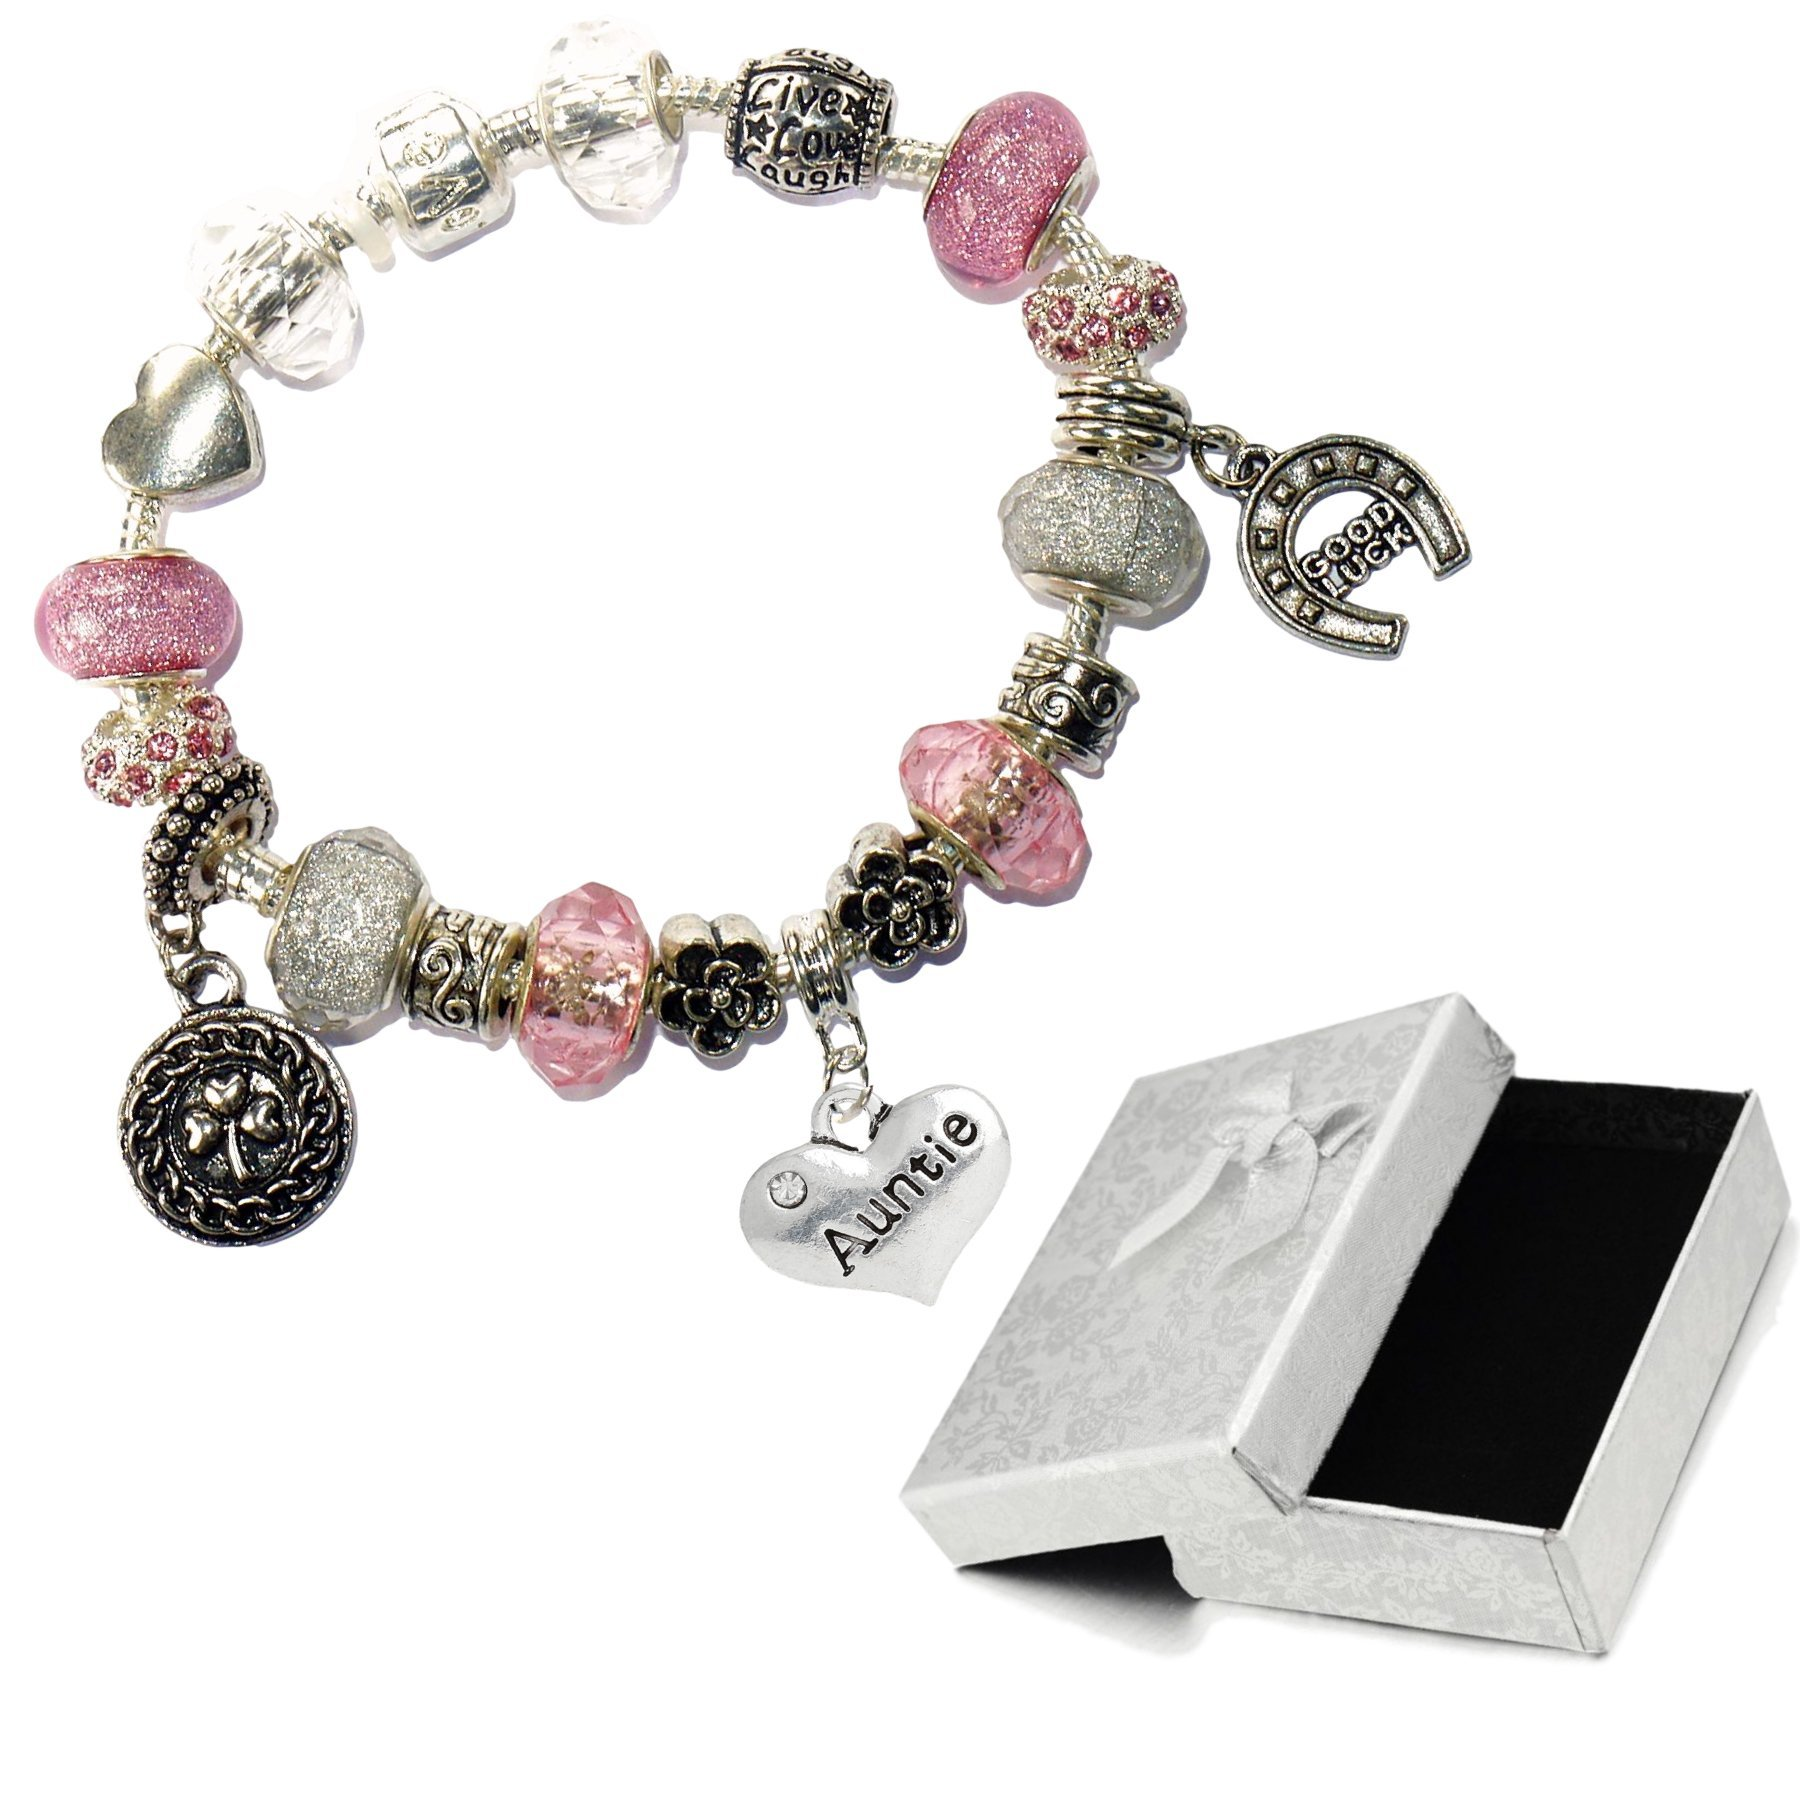 Charm Buddy Auntie Aunt Pink Silver Crystal Good Luck Pandora Style Bracelet With Charms Gift Box